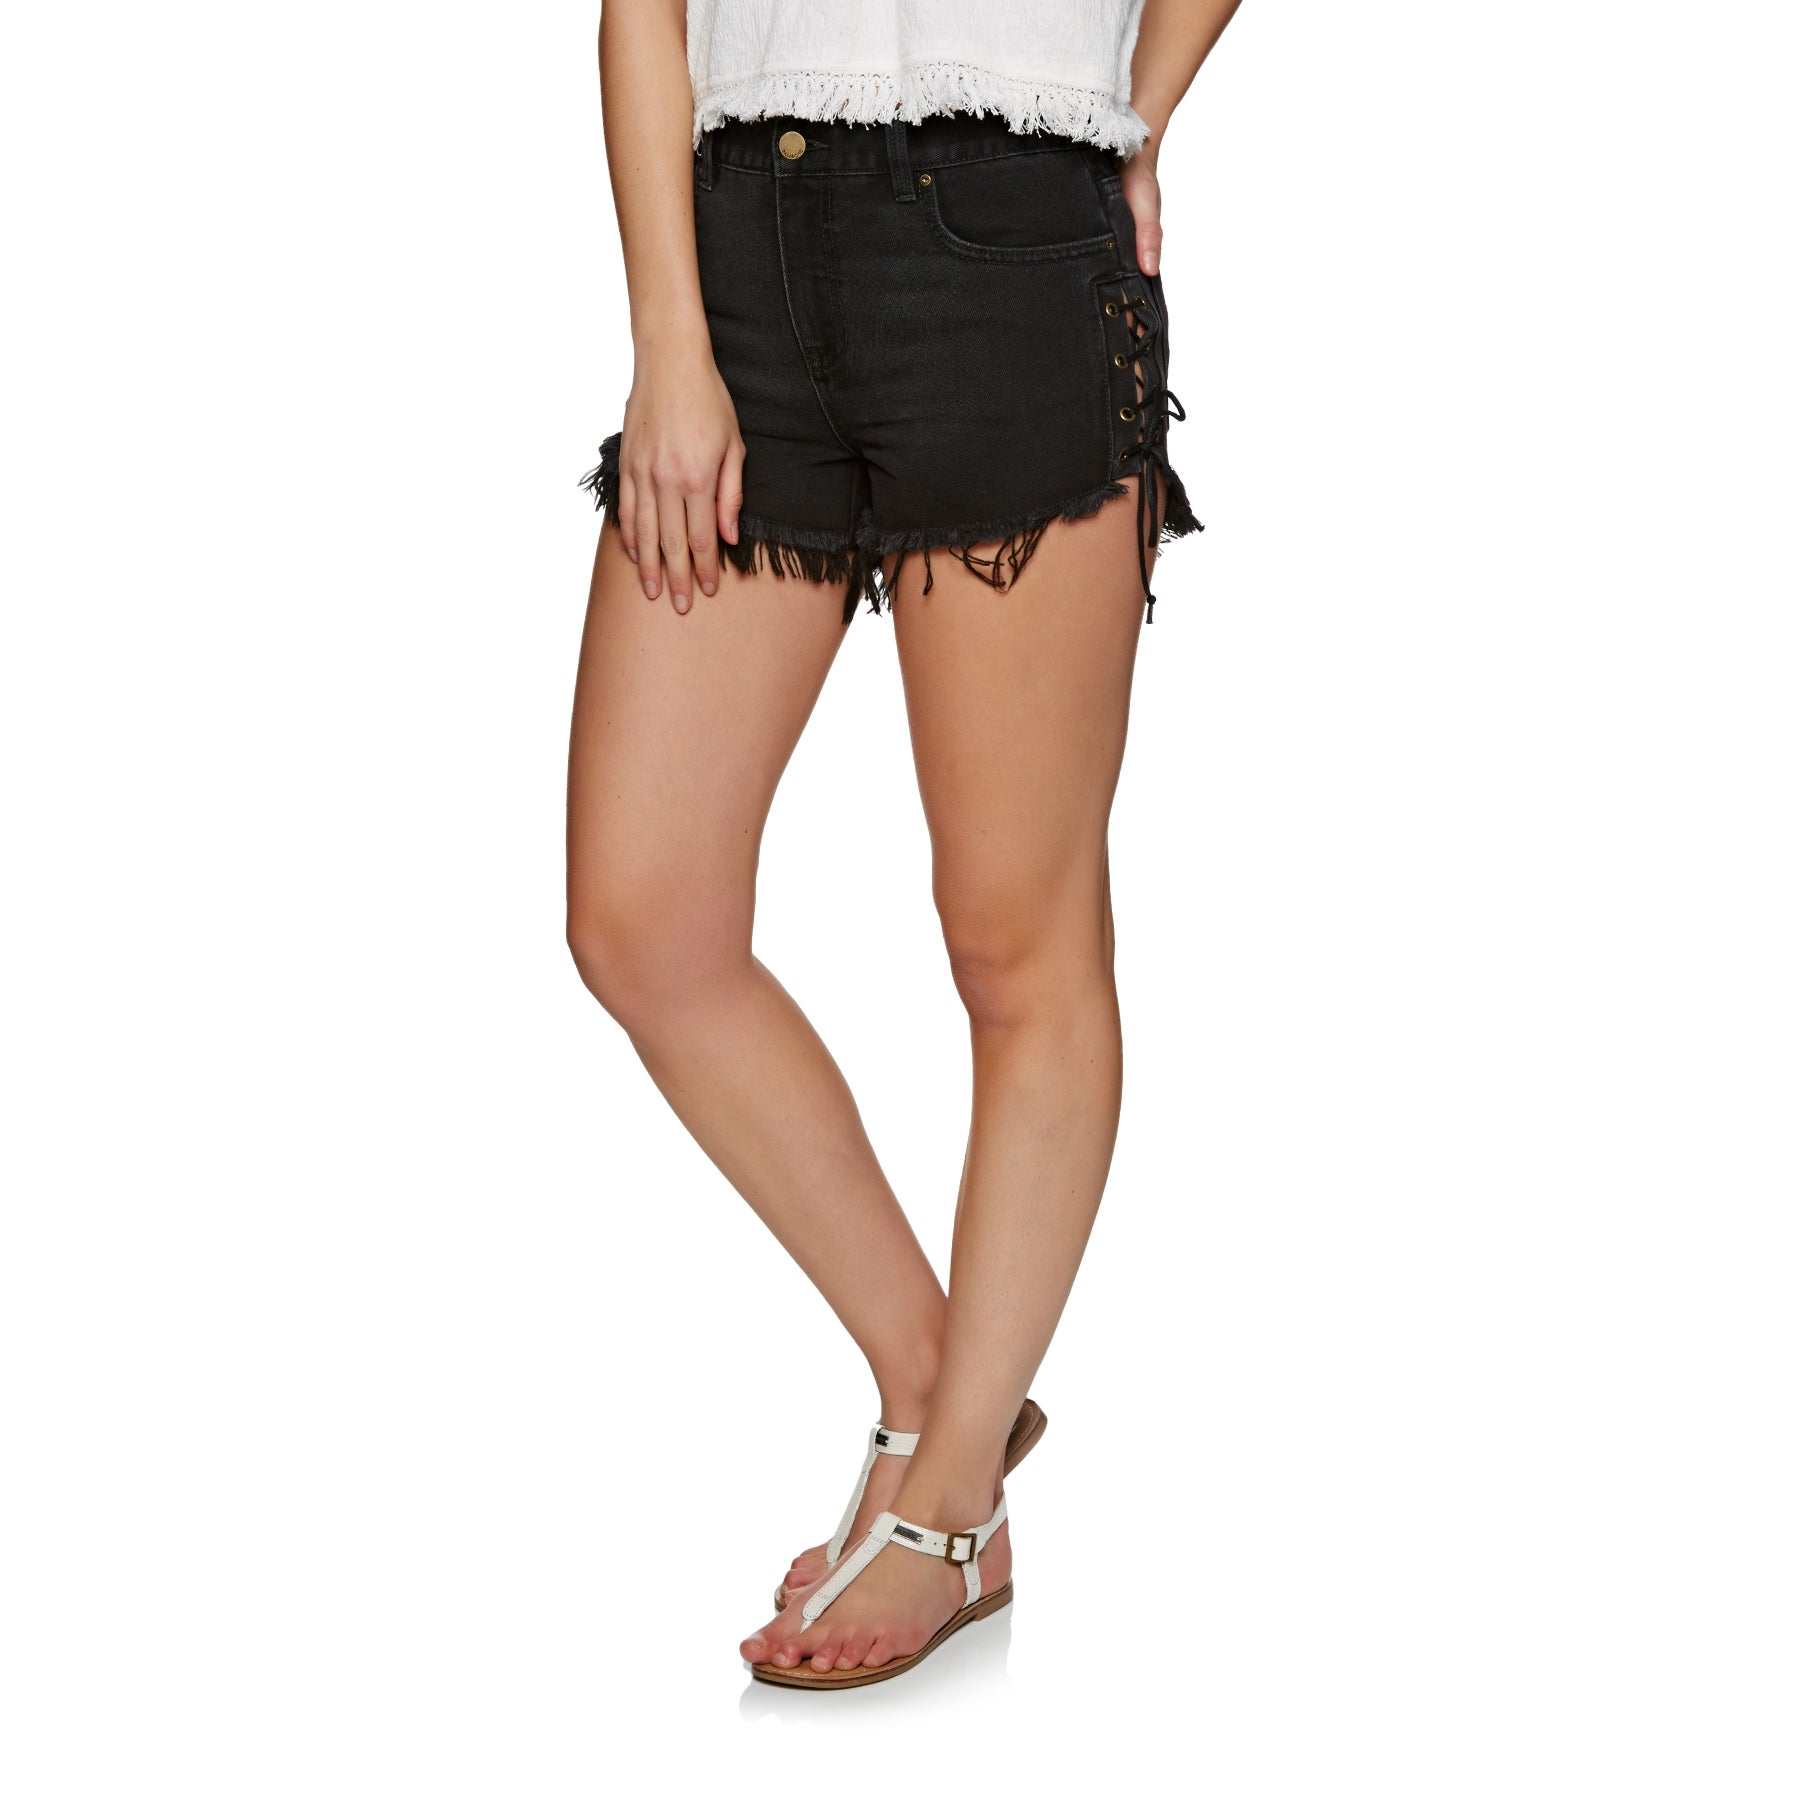 Shorts pour la Marche Femme Billabong Tide Out - Black Pebble